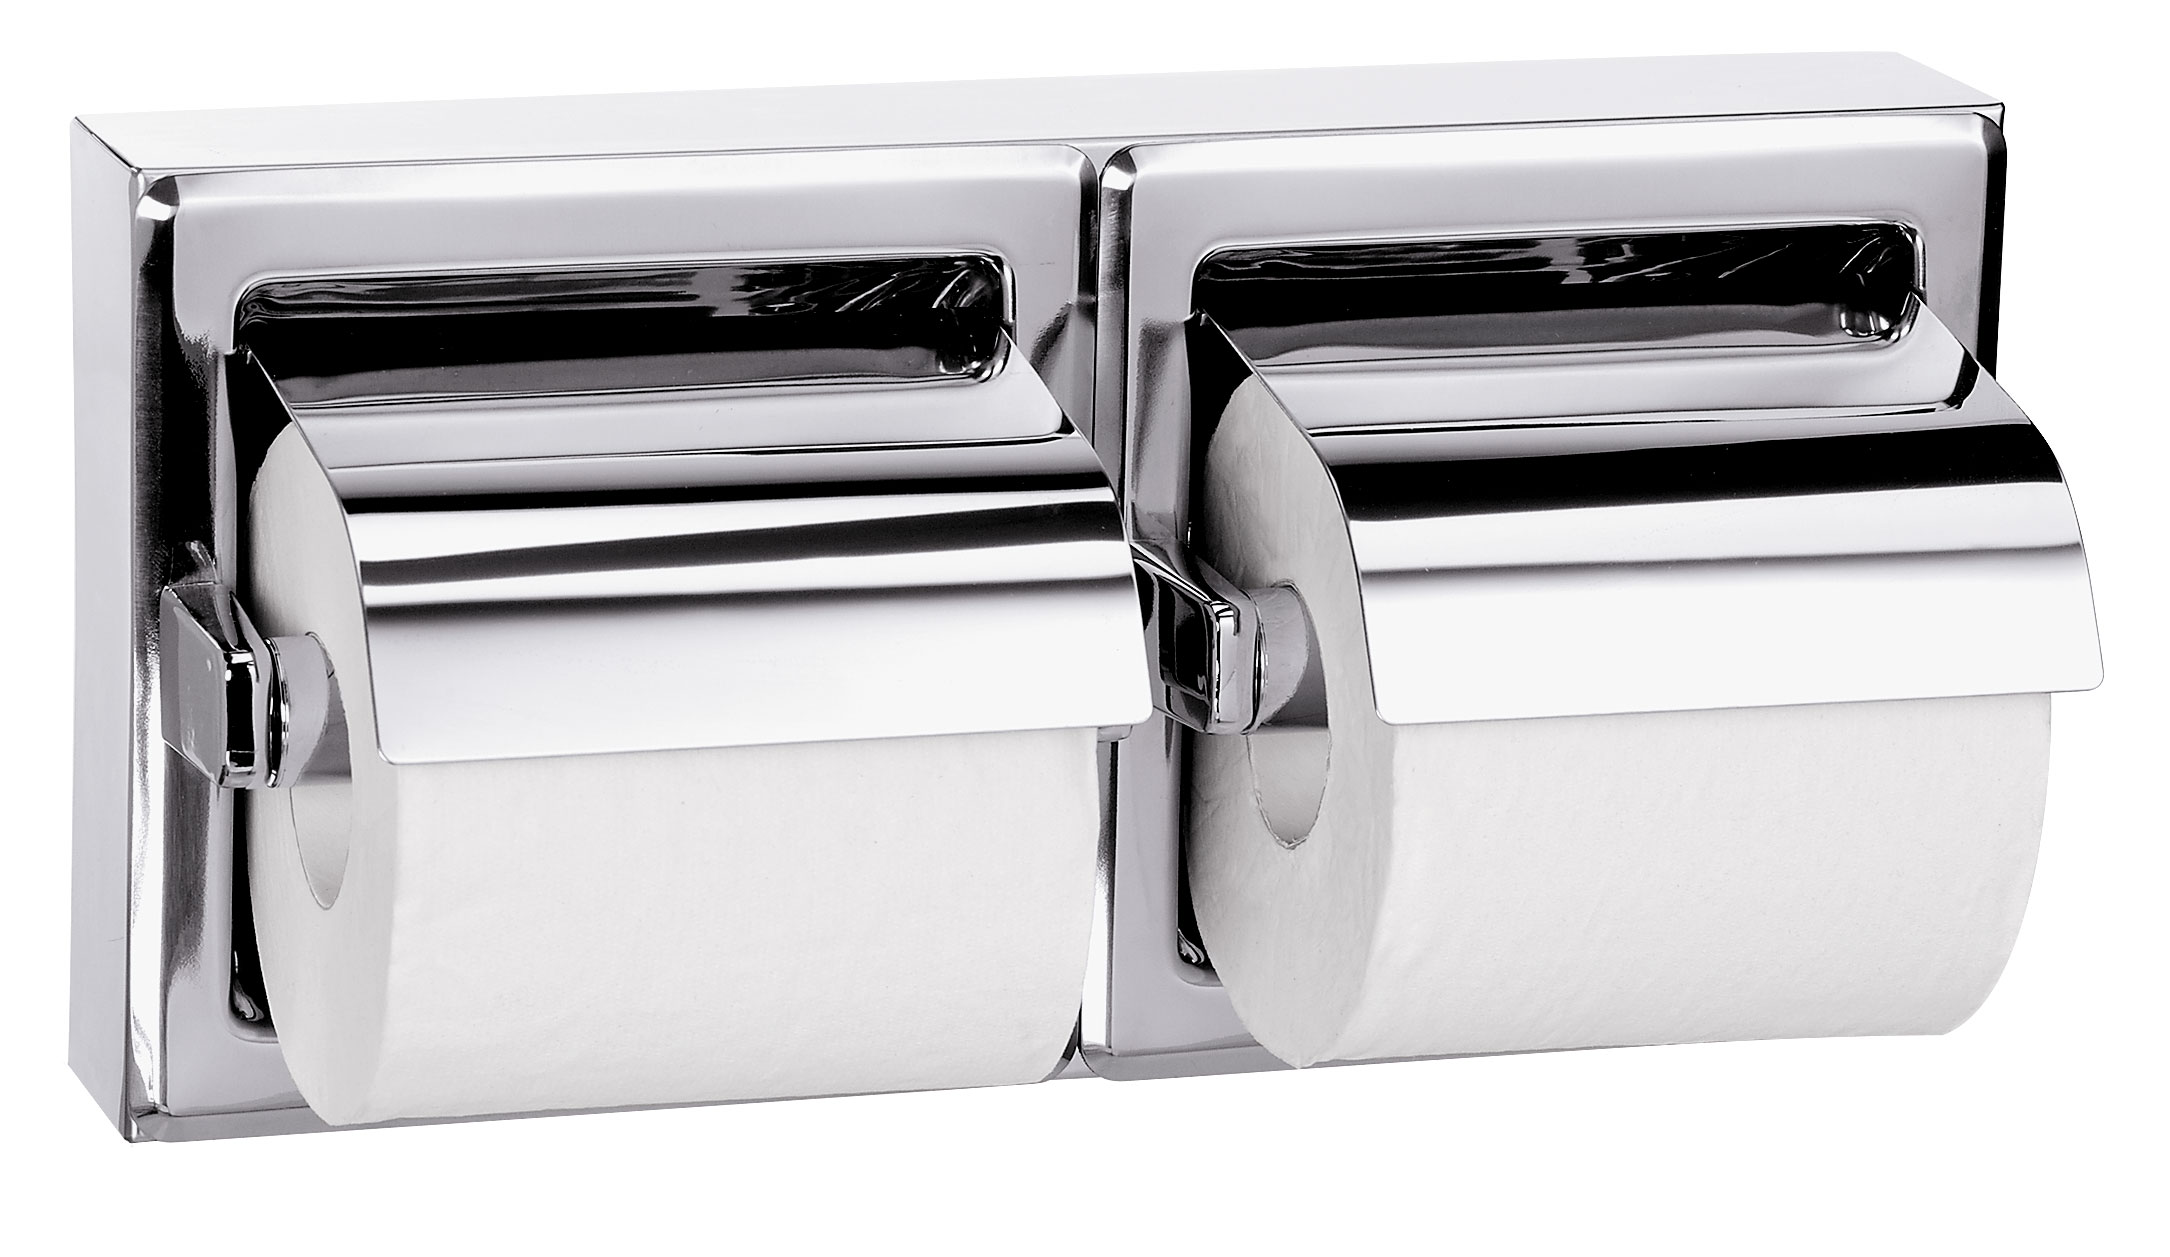 Bradley 5126 Double Roll Toilet Paper Dispenser